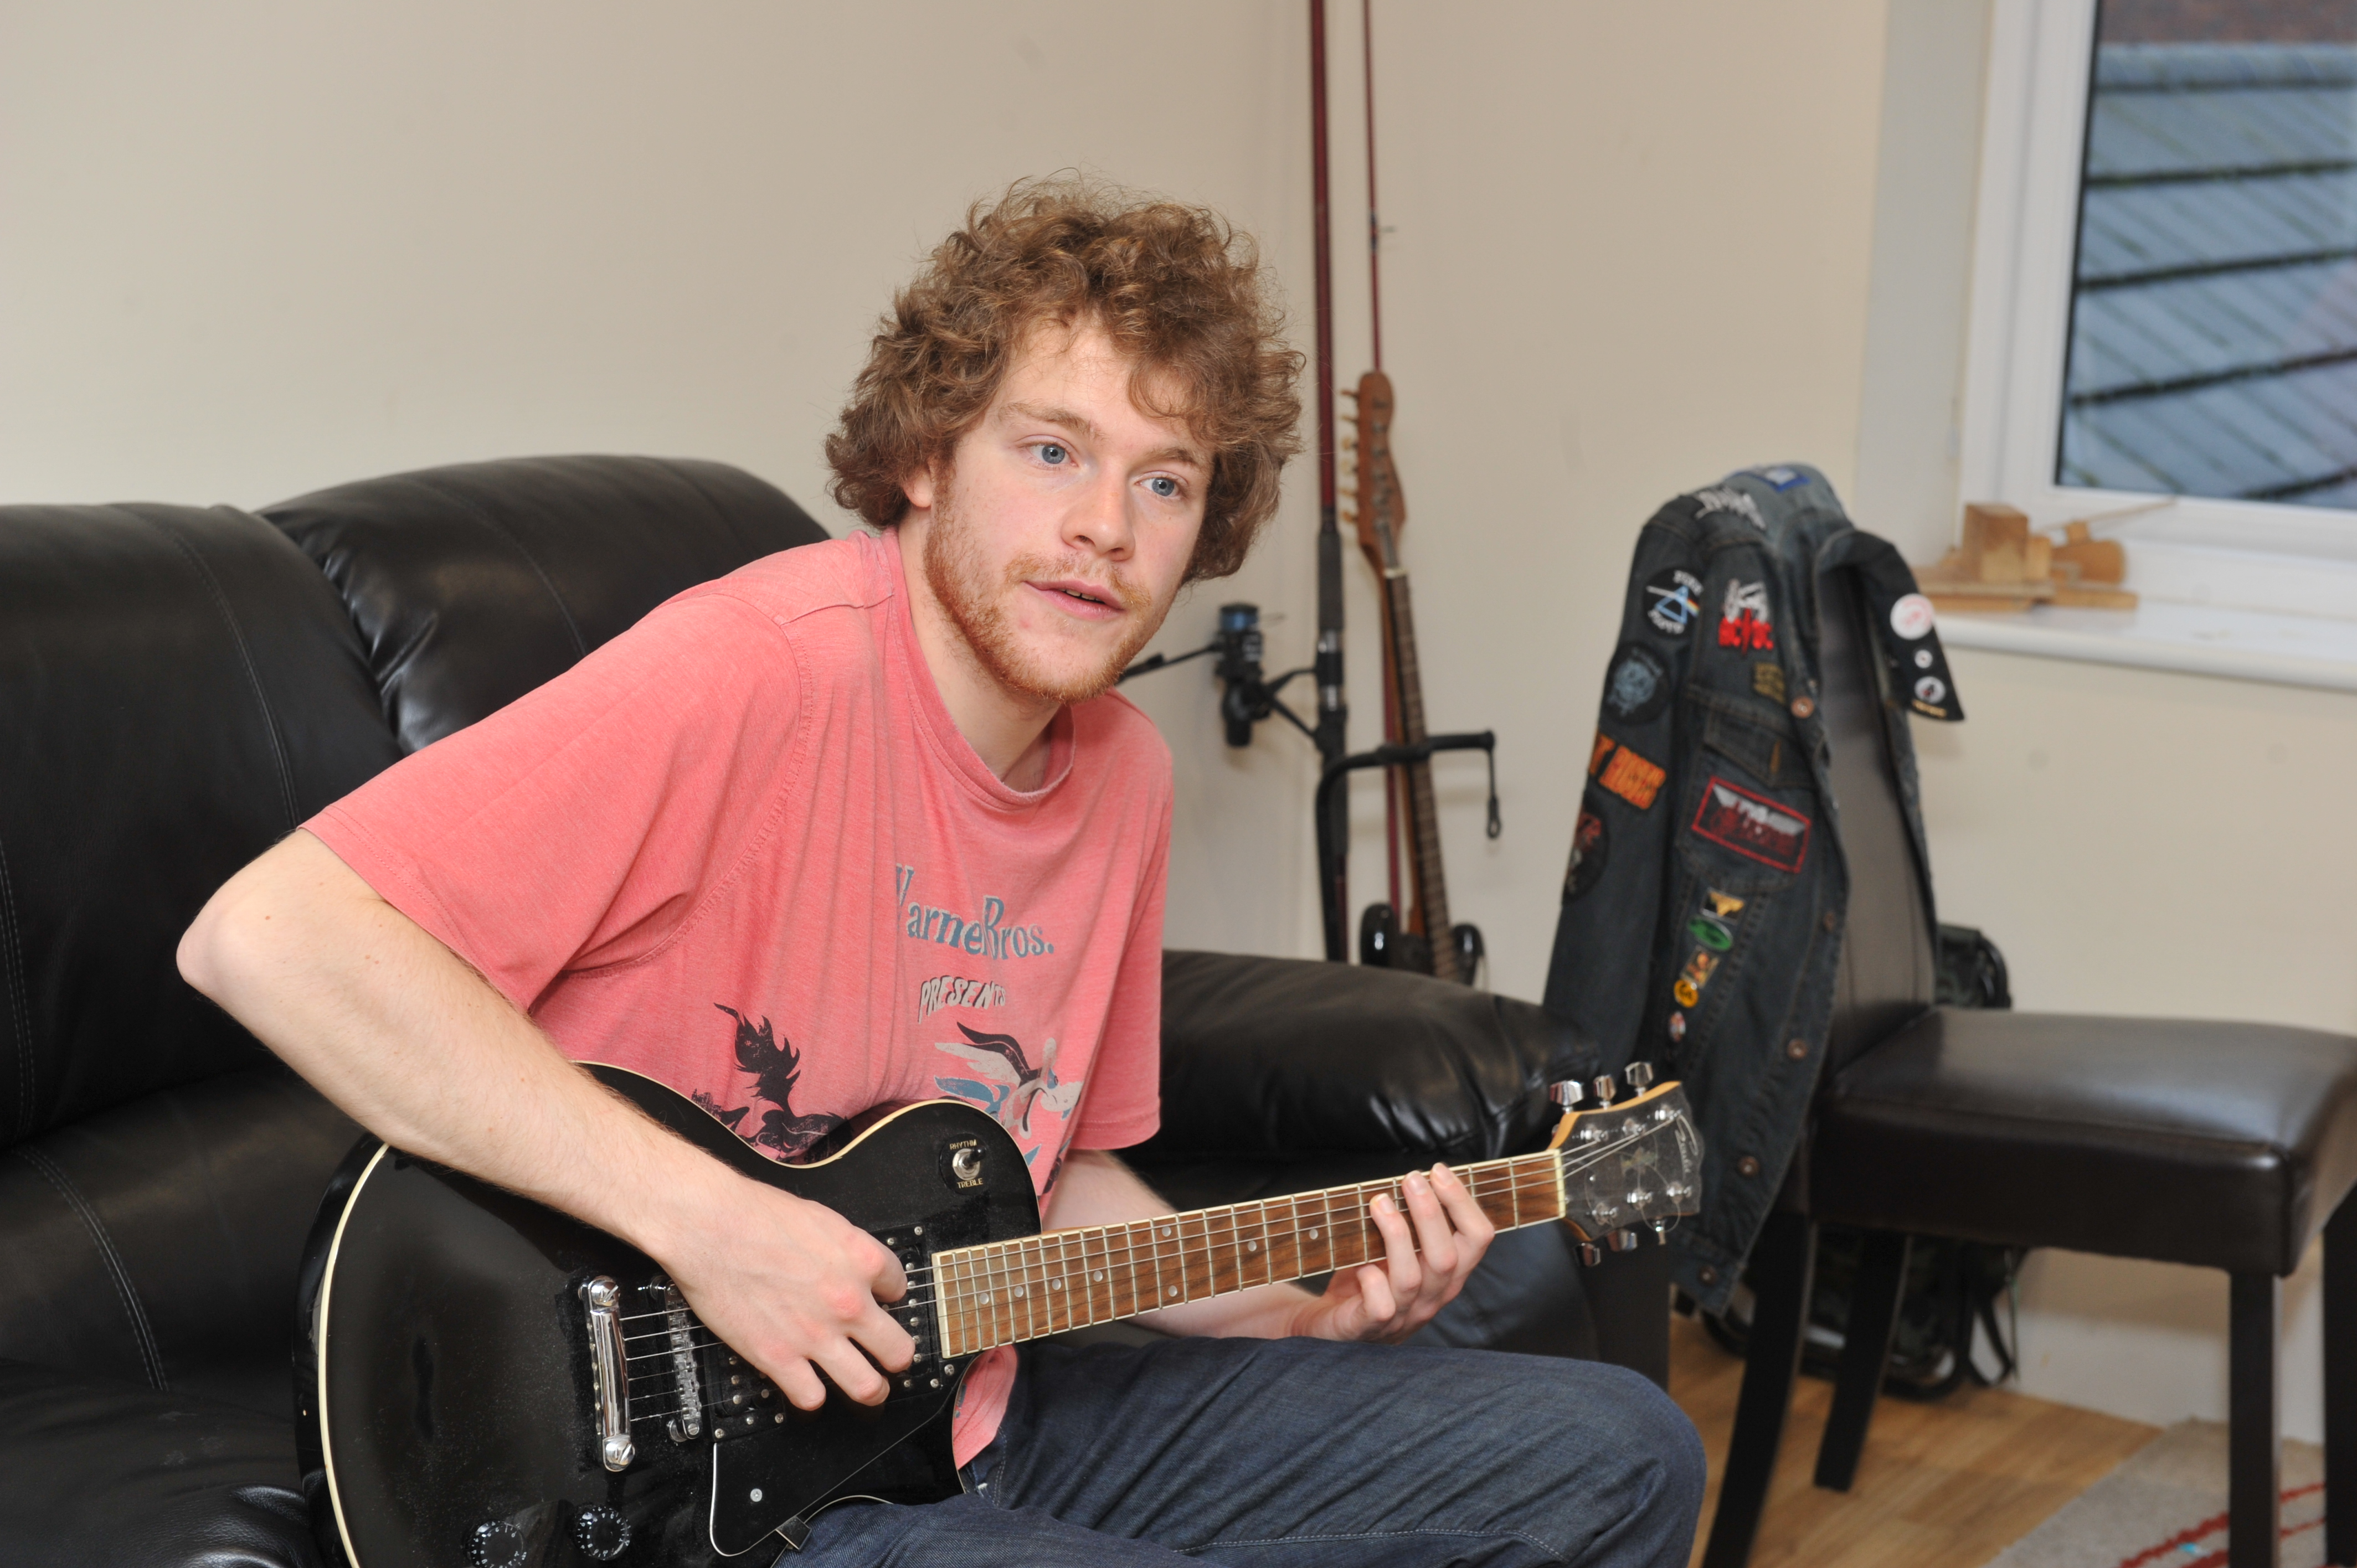 Lifeways SIL - Our Support - Boy Playing Guitar